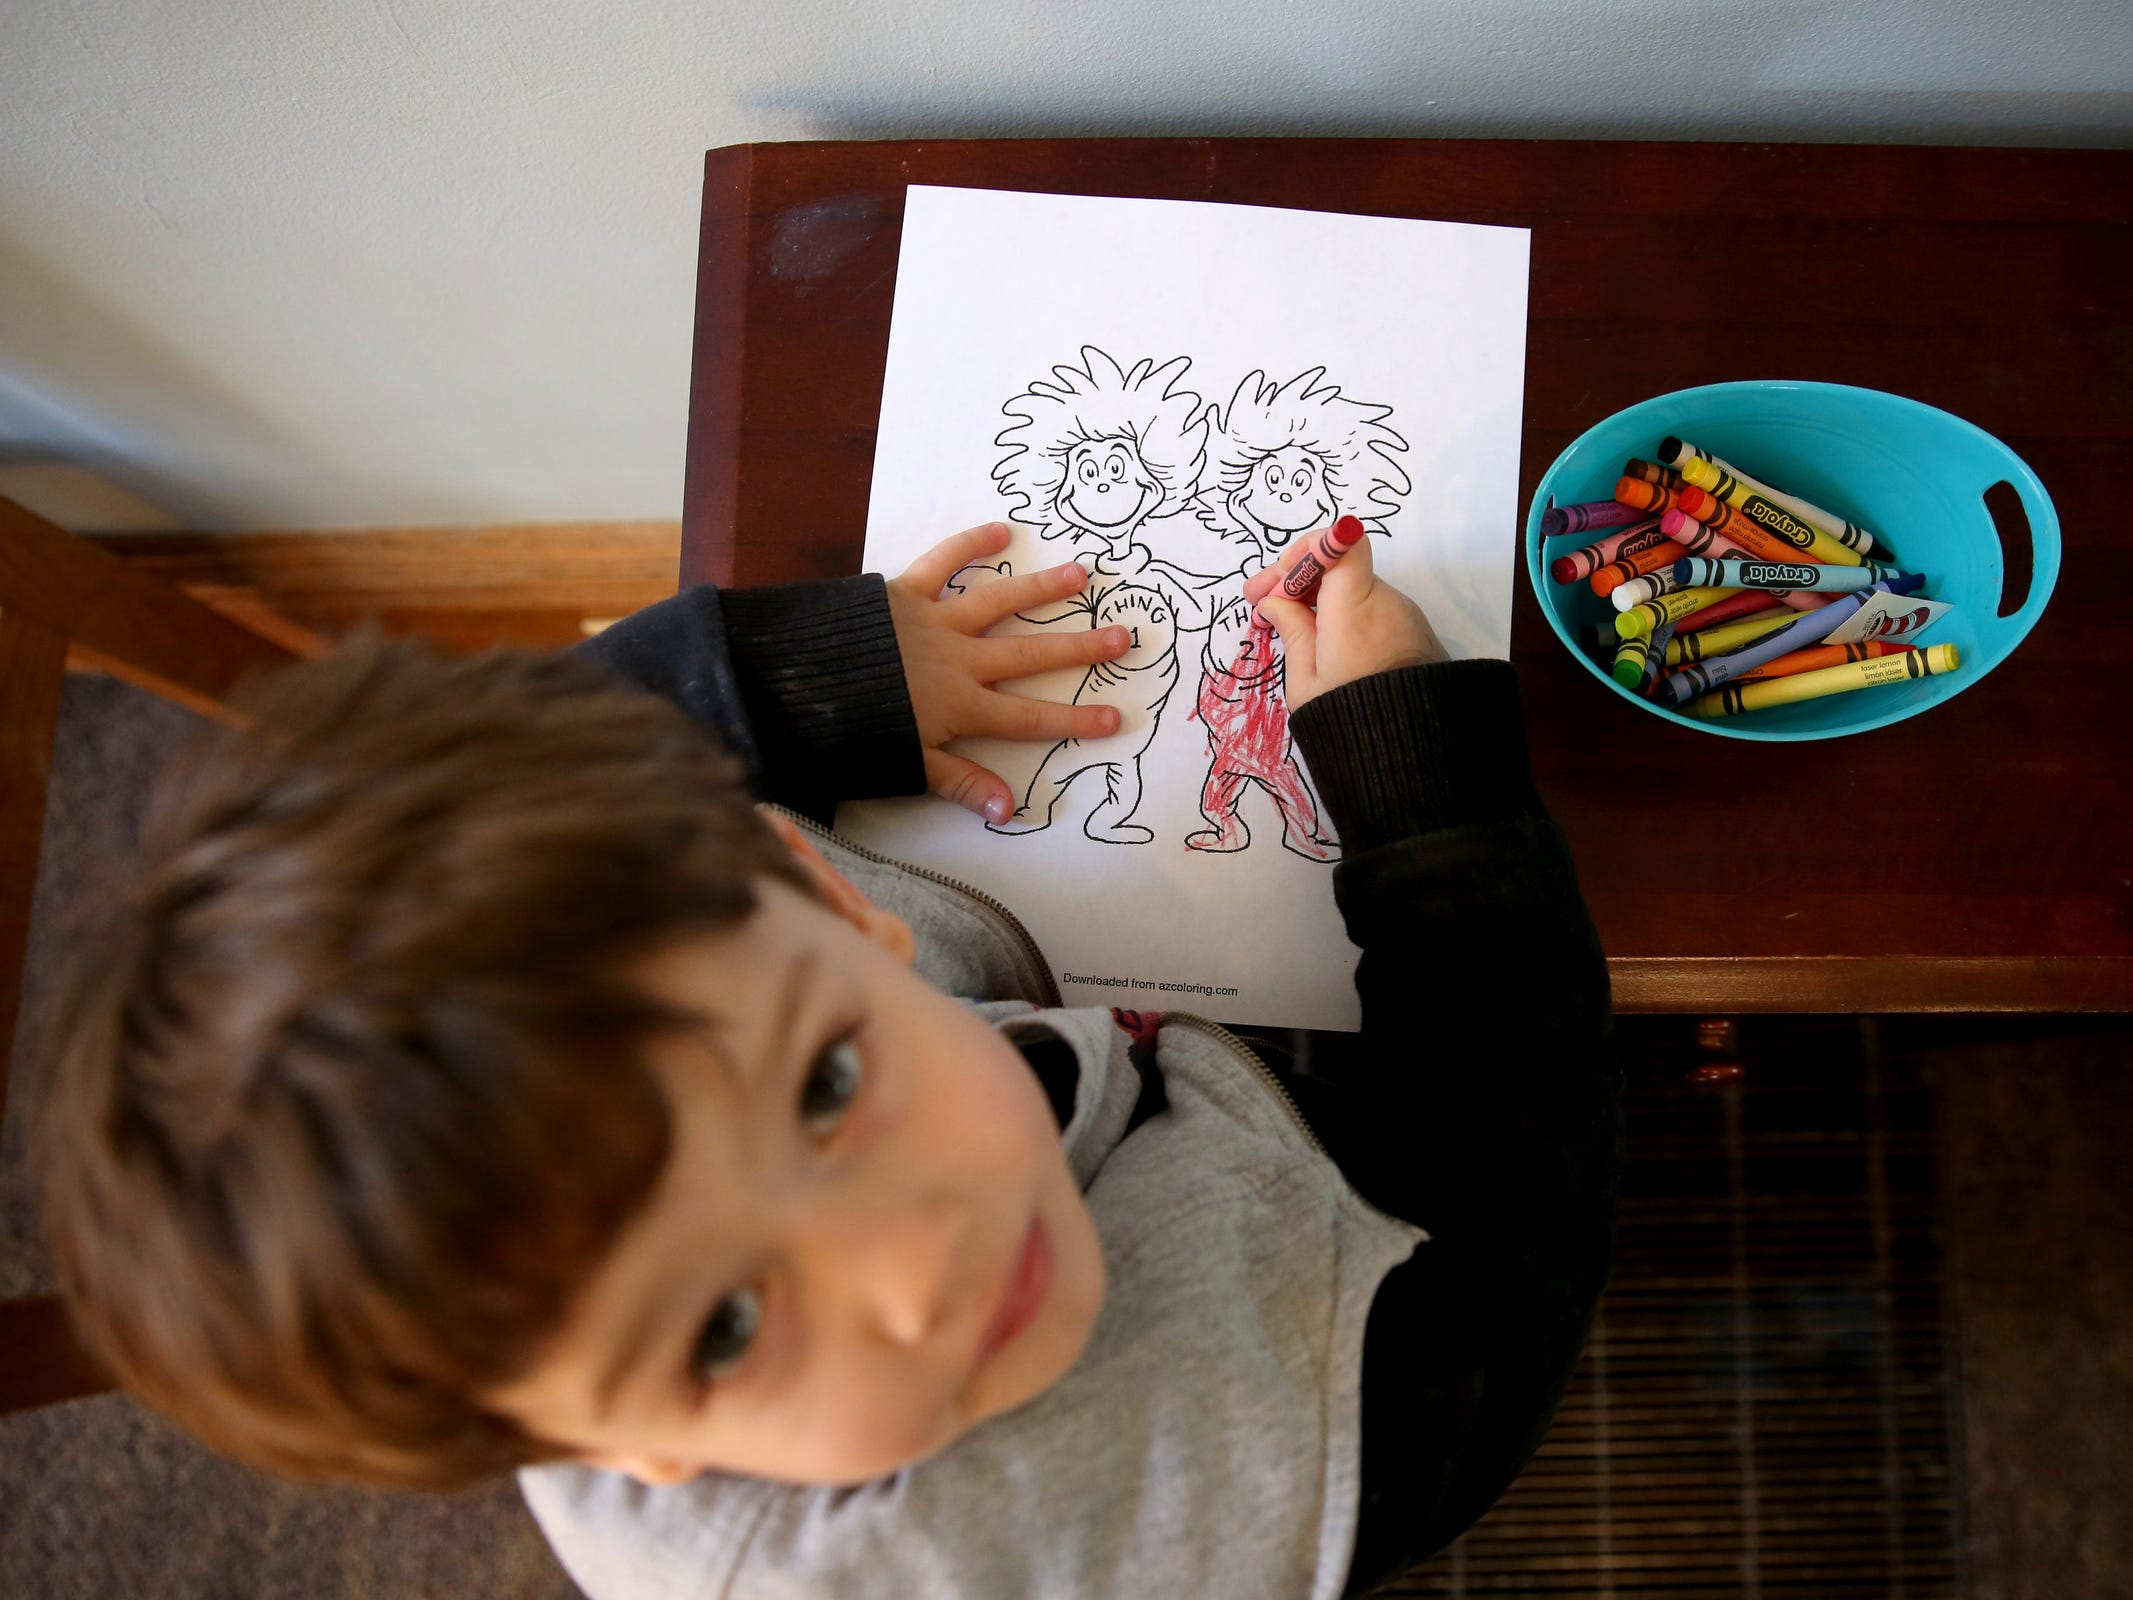 Jackson Evans, 4, of Salem, colors as part of a National Read Across America Day activity in honor of Dr. Seuss' birthday at Gilbert House Children's Museum in Salem  on Friday, March 1, 2019.